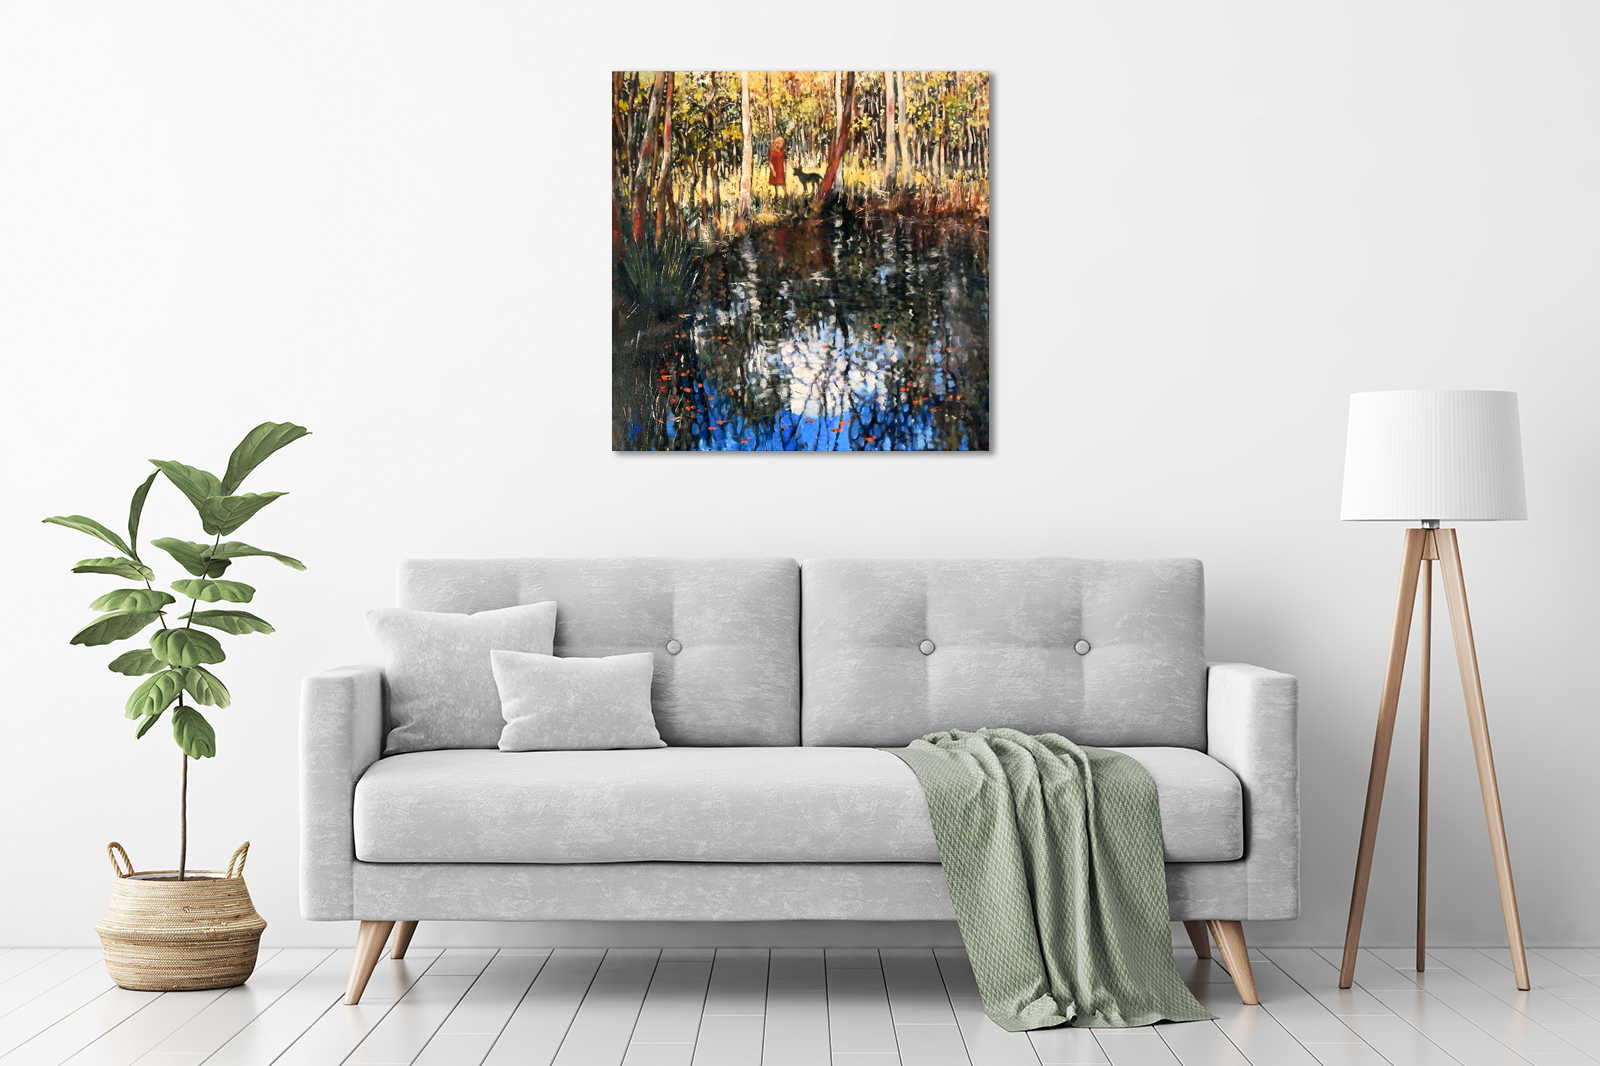 Trees Edge, Water World in a room